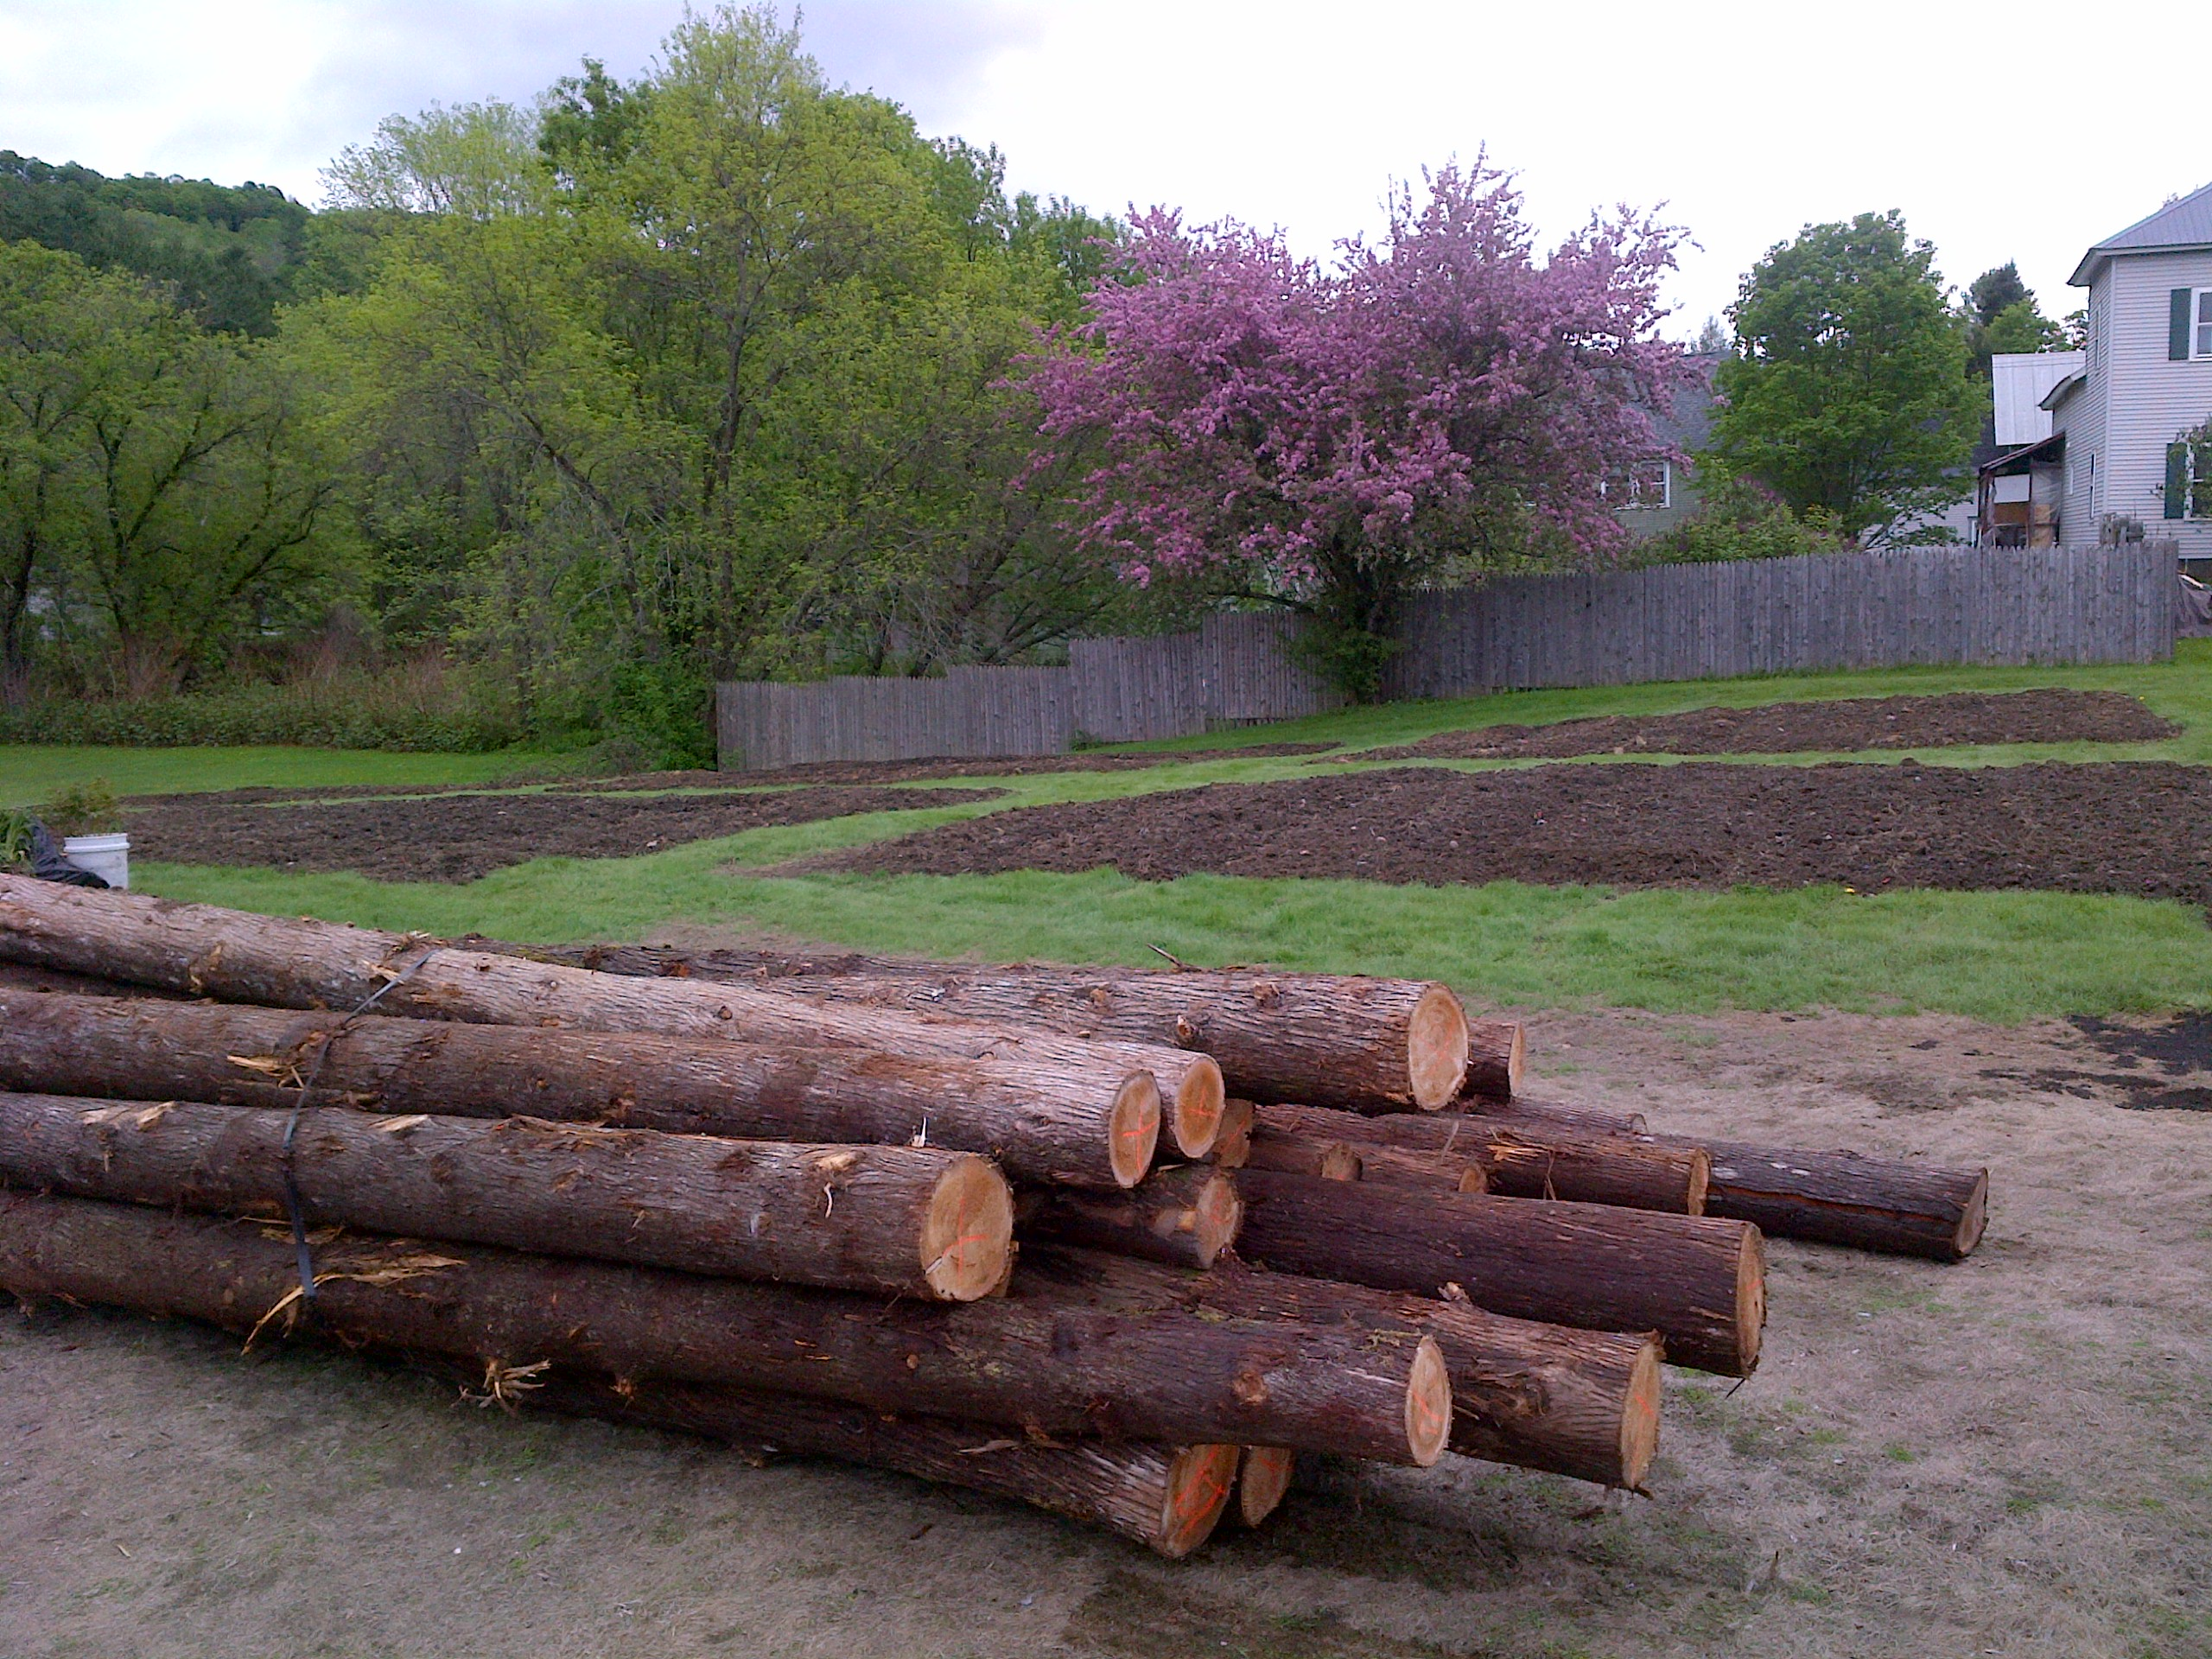 Next project: Peeling bark off cedar fence posts & getting a post hole digger over here